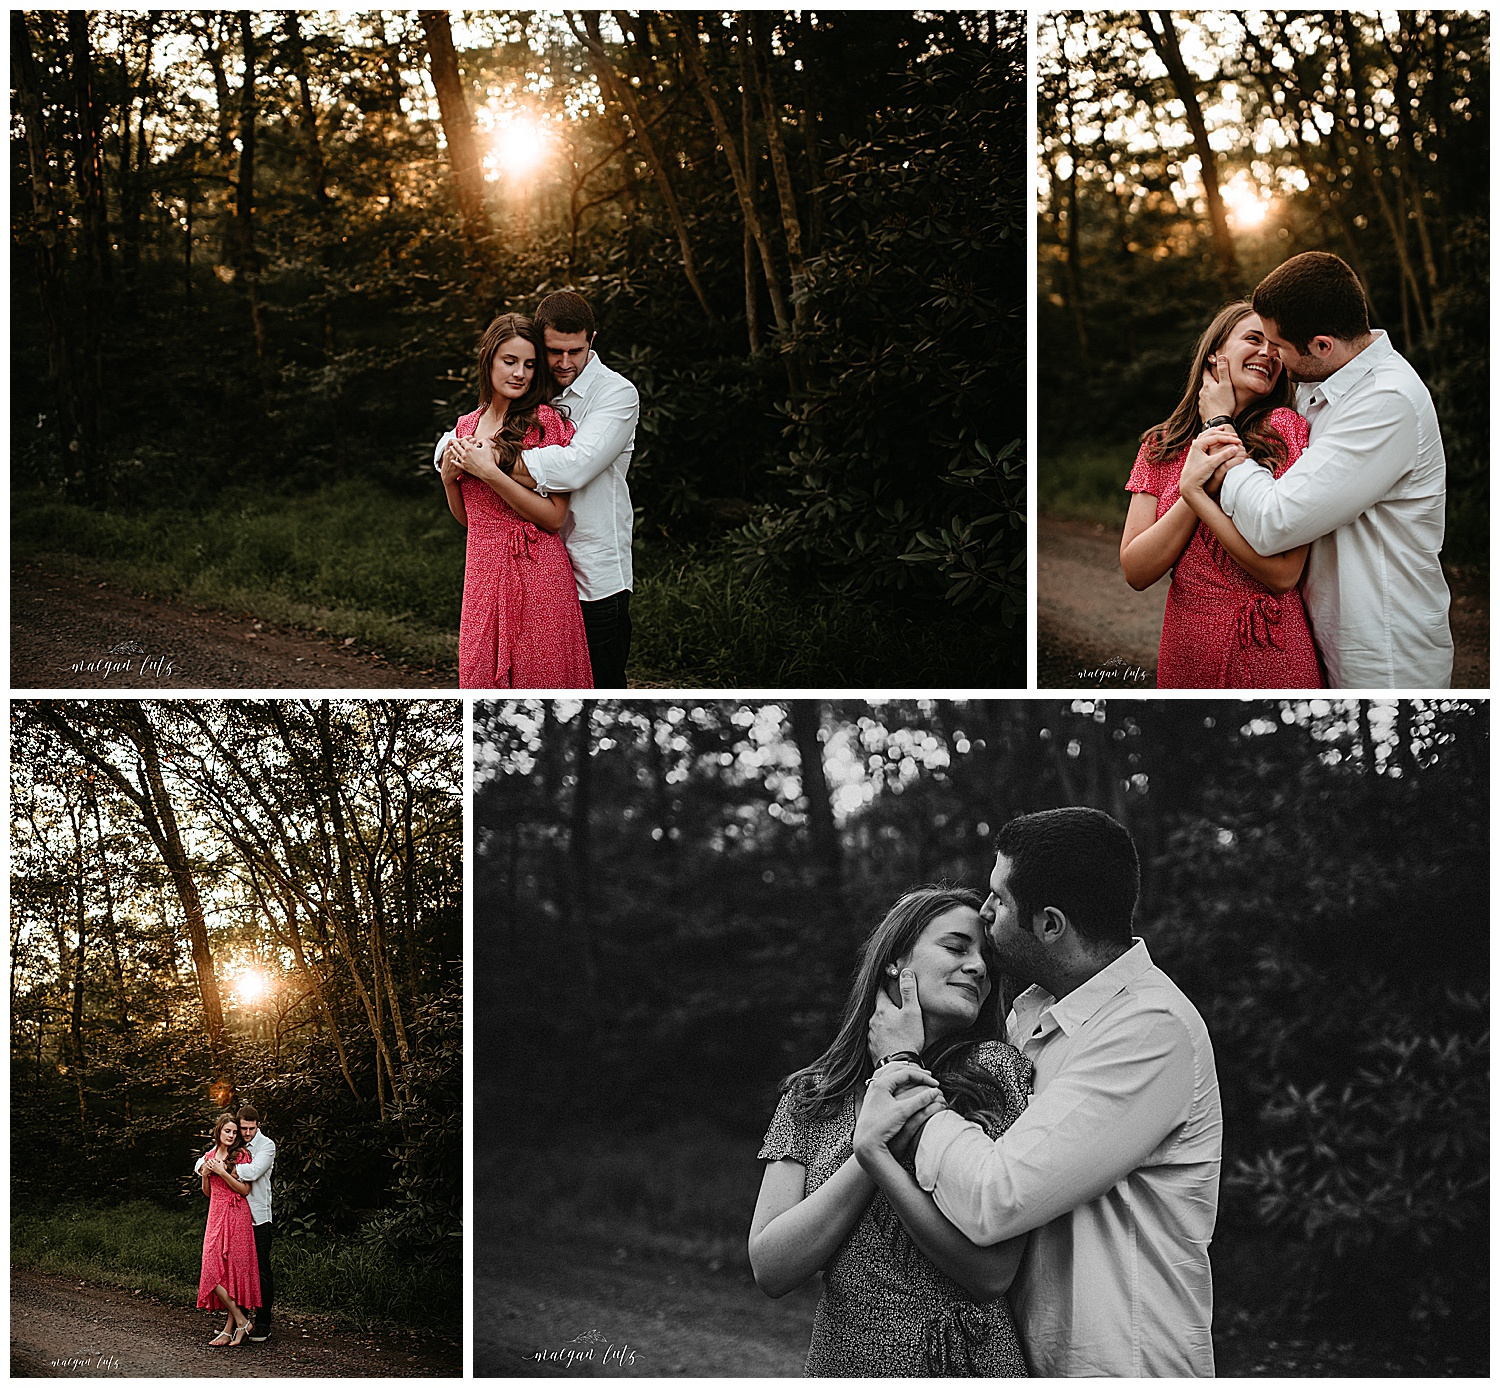 NEPA-Mount-Pocono-Lehigh-Valley-Wedding-Engagement-photographer-at-Hickory-Run-State-Park-Whitehaven-PA_0010.jpg